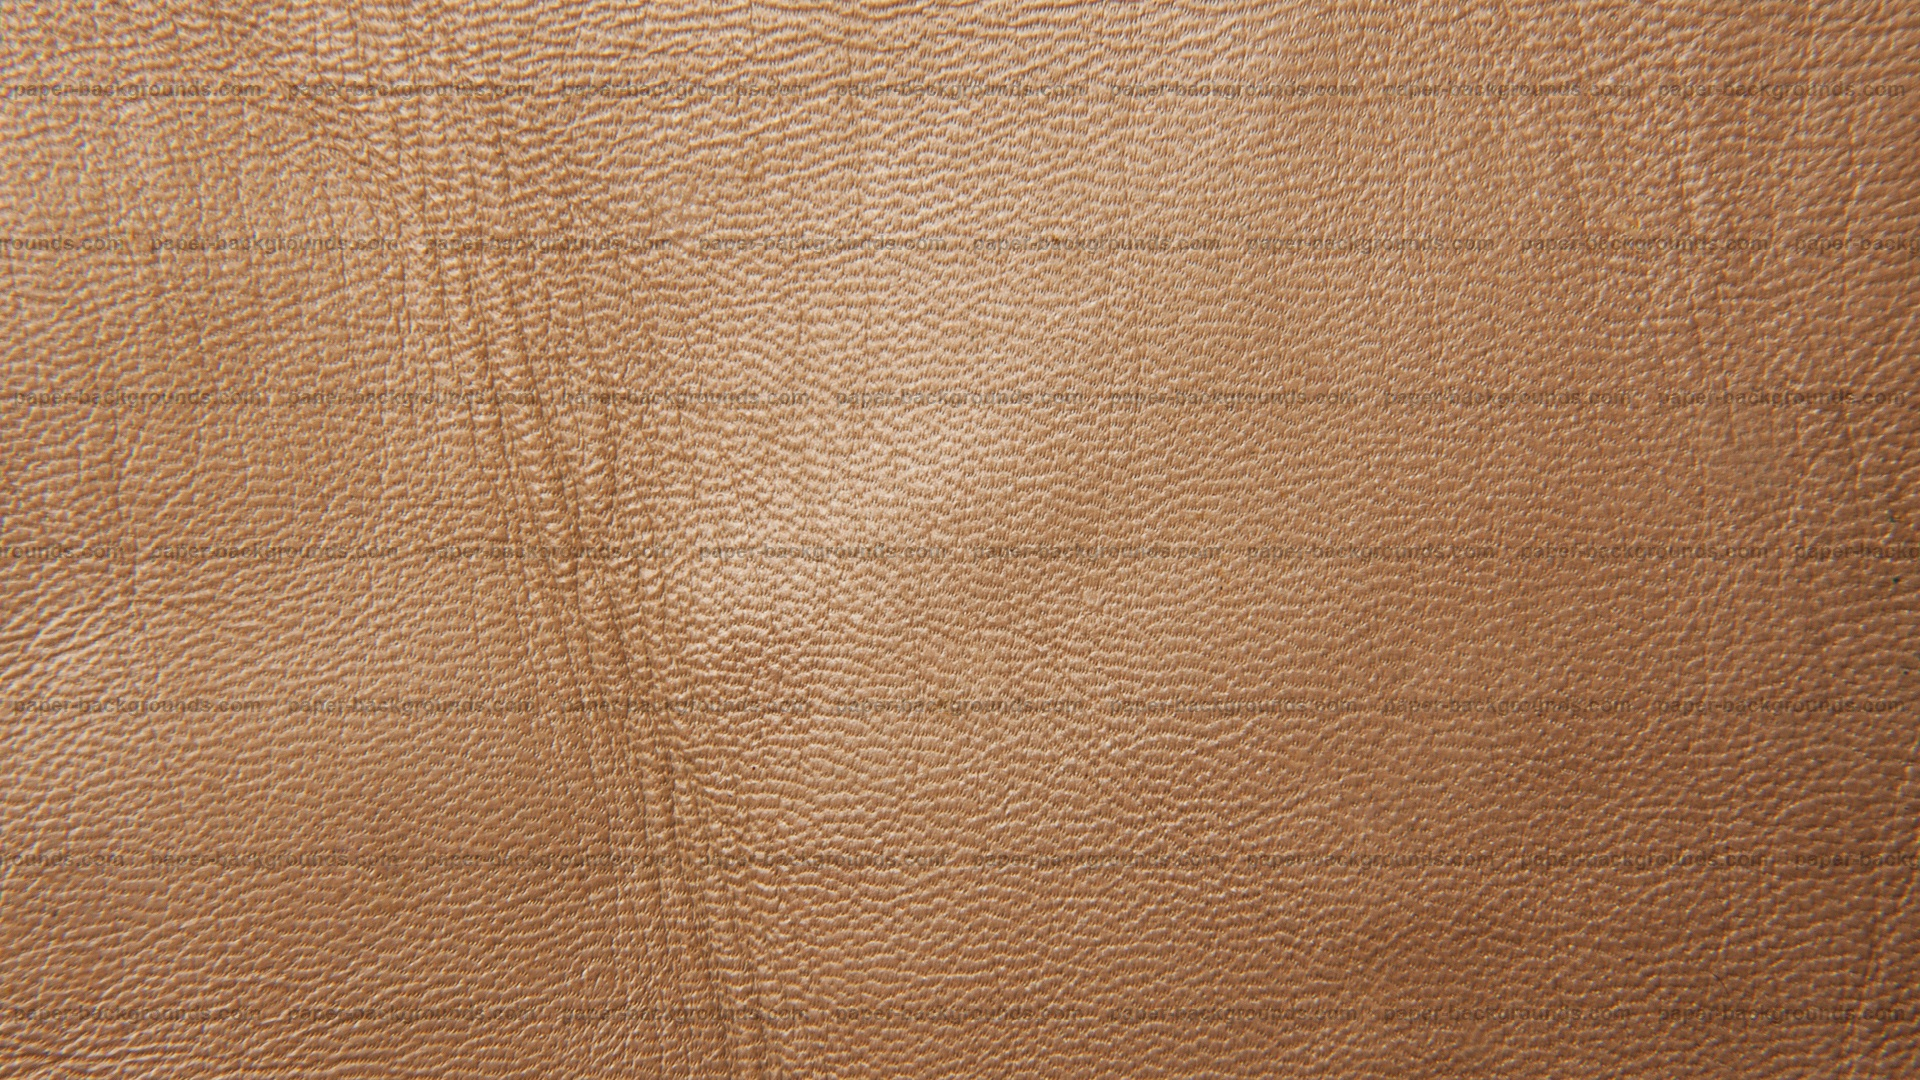 Light Brown Soft Leather Texture HD